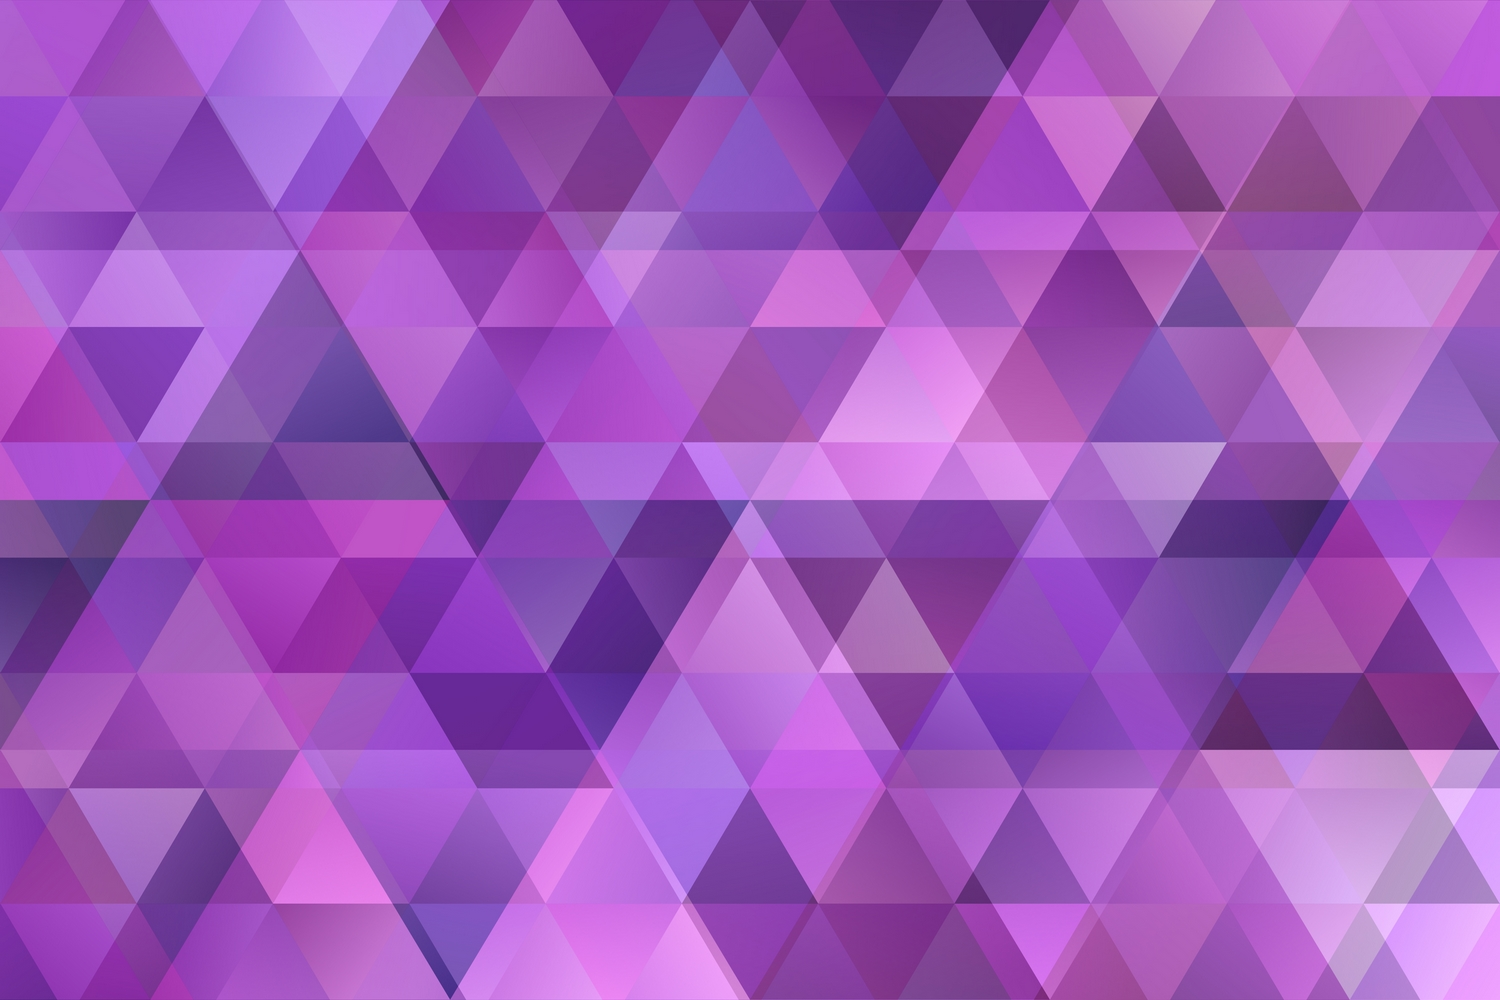 24 Gradient Polygon Backgrounds AI, EPS, JPG 5000x5000 example image 19